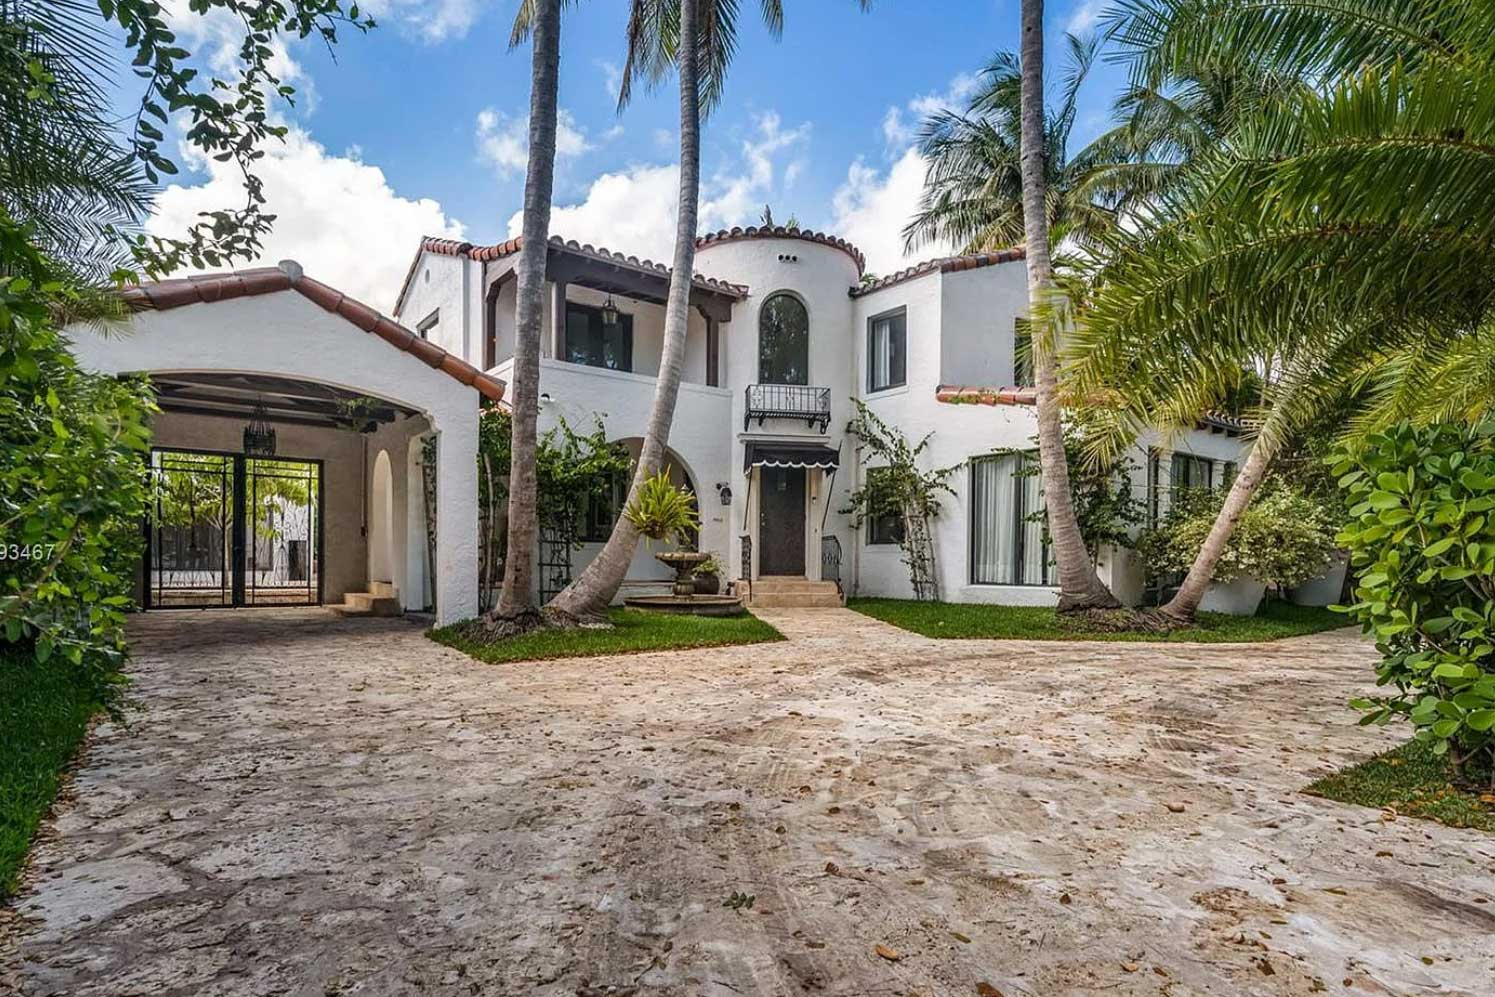 Remarkable 9 Beautiful Historical Houses For Sale In Southeast Florida Home Interior And Landscaping Ponolsignezvosmurscom